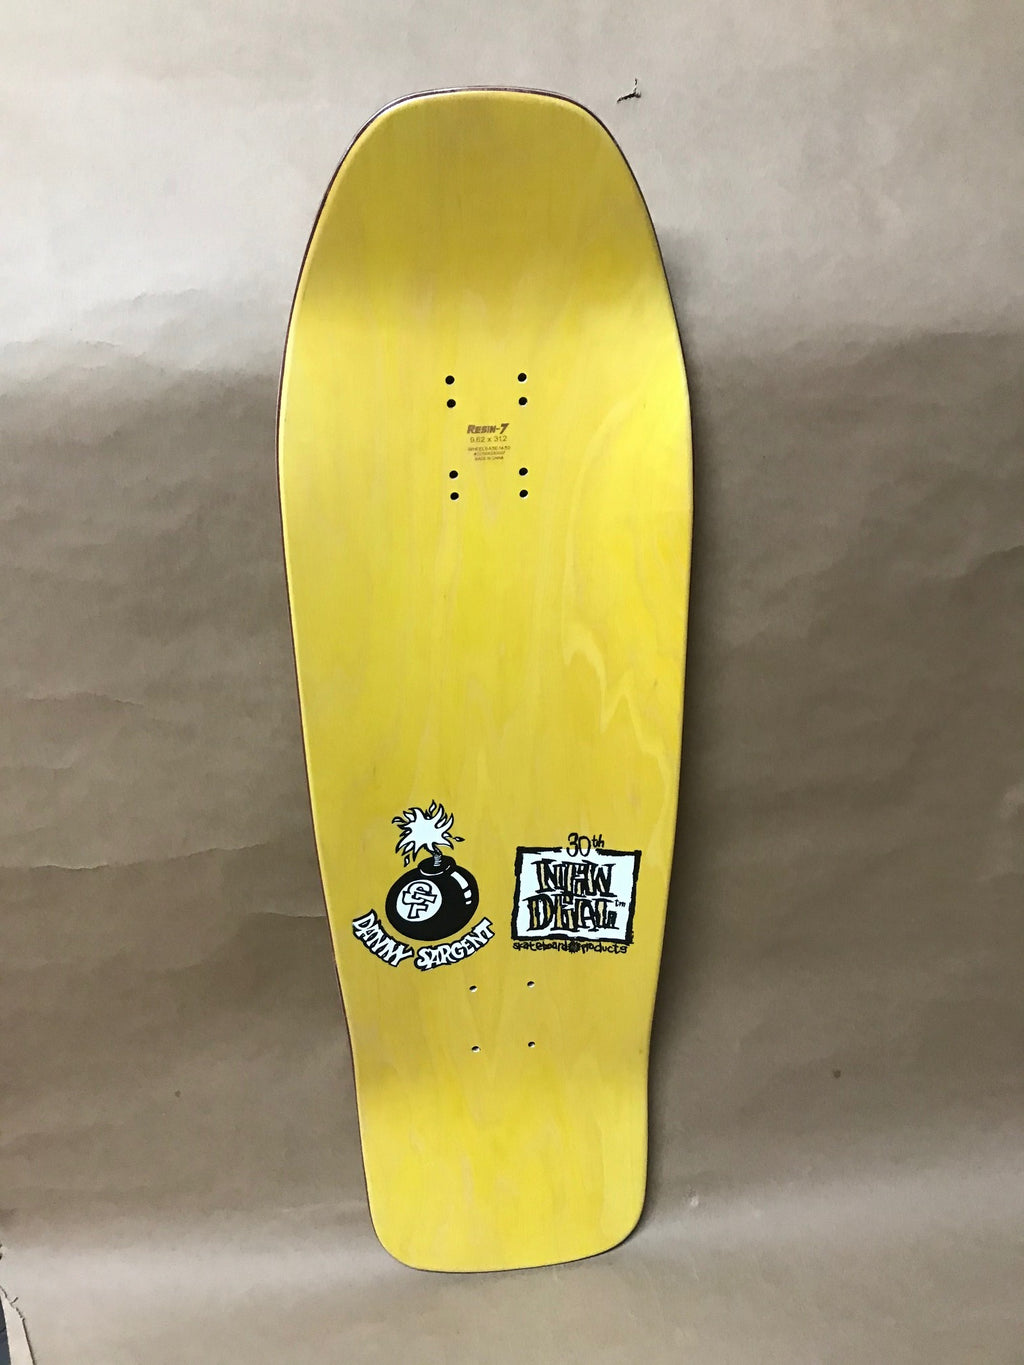 New Deal Sargent Monkey Bomber  Yellow 9.625 Deck